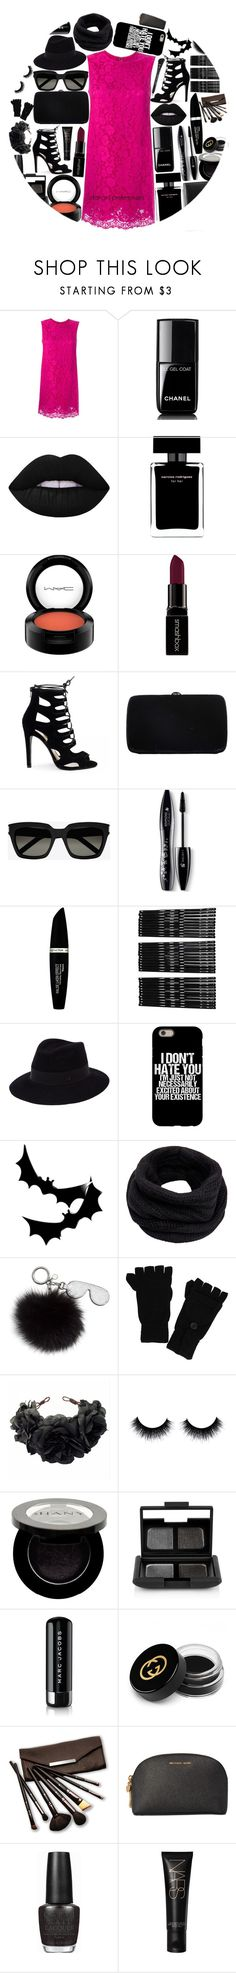 """""""Pink n' black"""" by fangirl-preferences ❤ liked on Polyvore featuring Dolce&Gabbana, Chanel, Lime Crime, Narciso Rodriguez, MAC Cosmetics, Smashbox, Sergio Rossi, Yves Saint Laurent, Lancôme and Max Factor"""